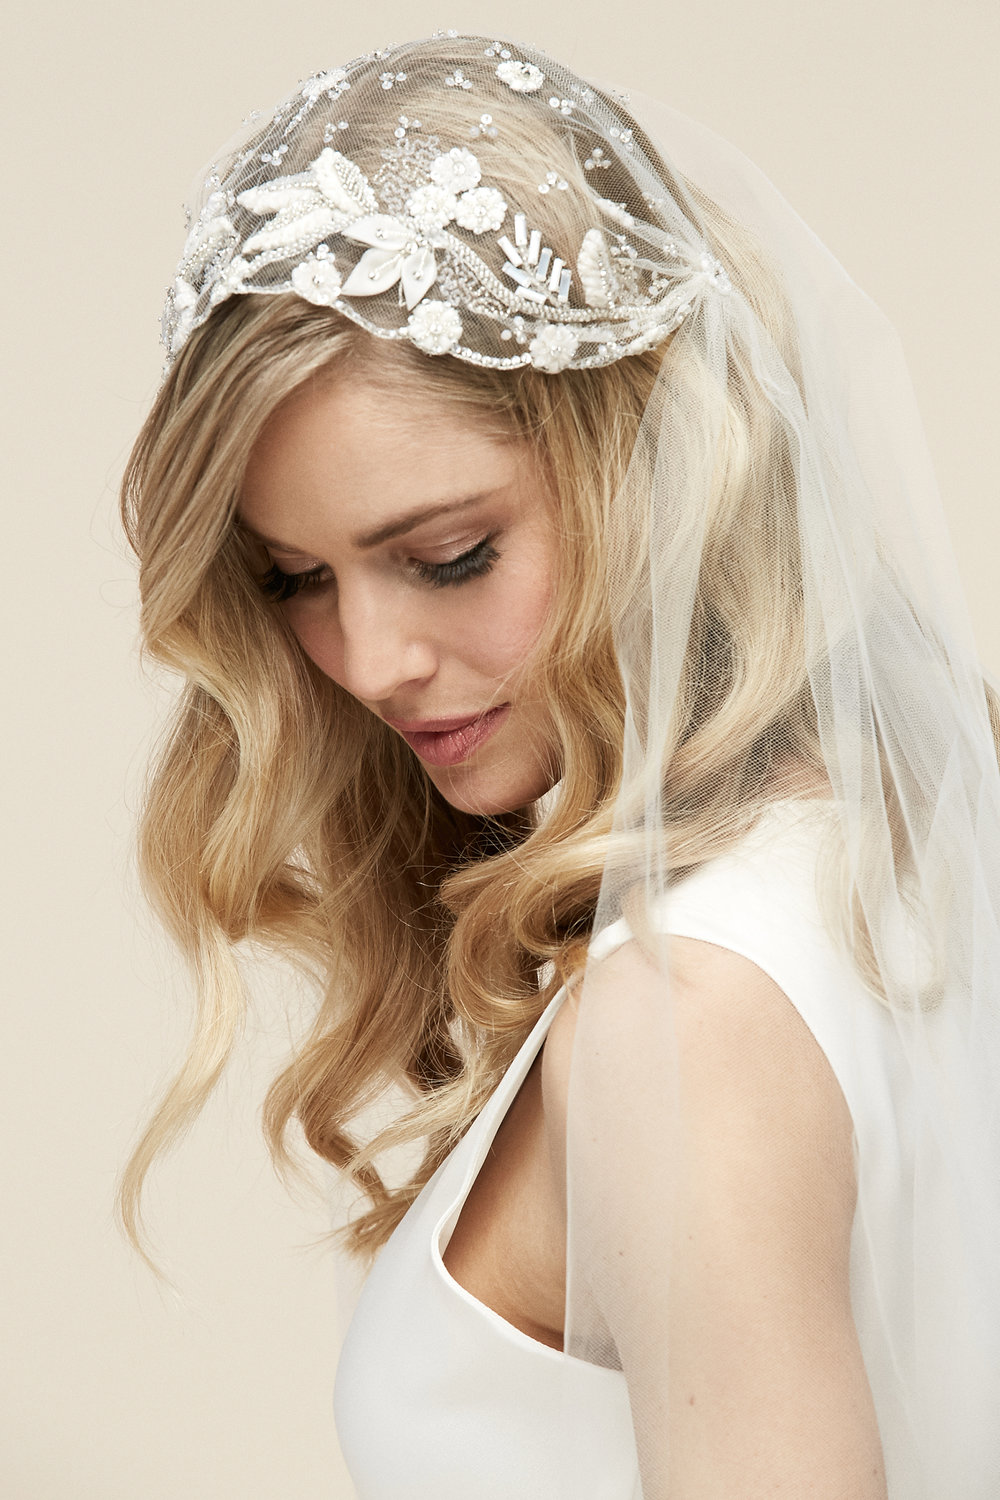 Asia Cap Veil   Details- Beaded Juliet cap veil  Cathedral only $598